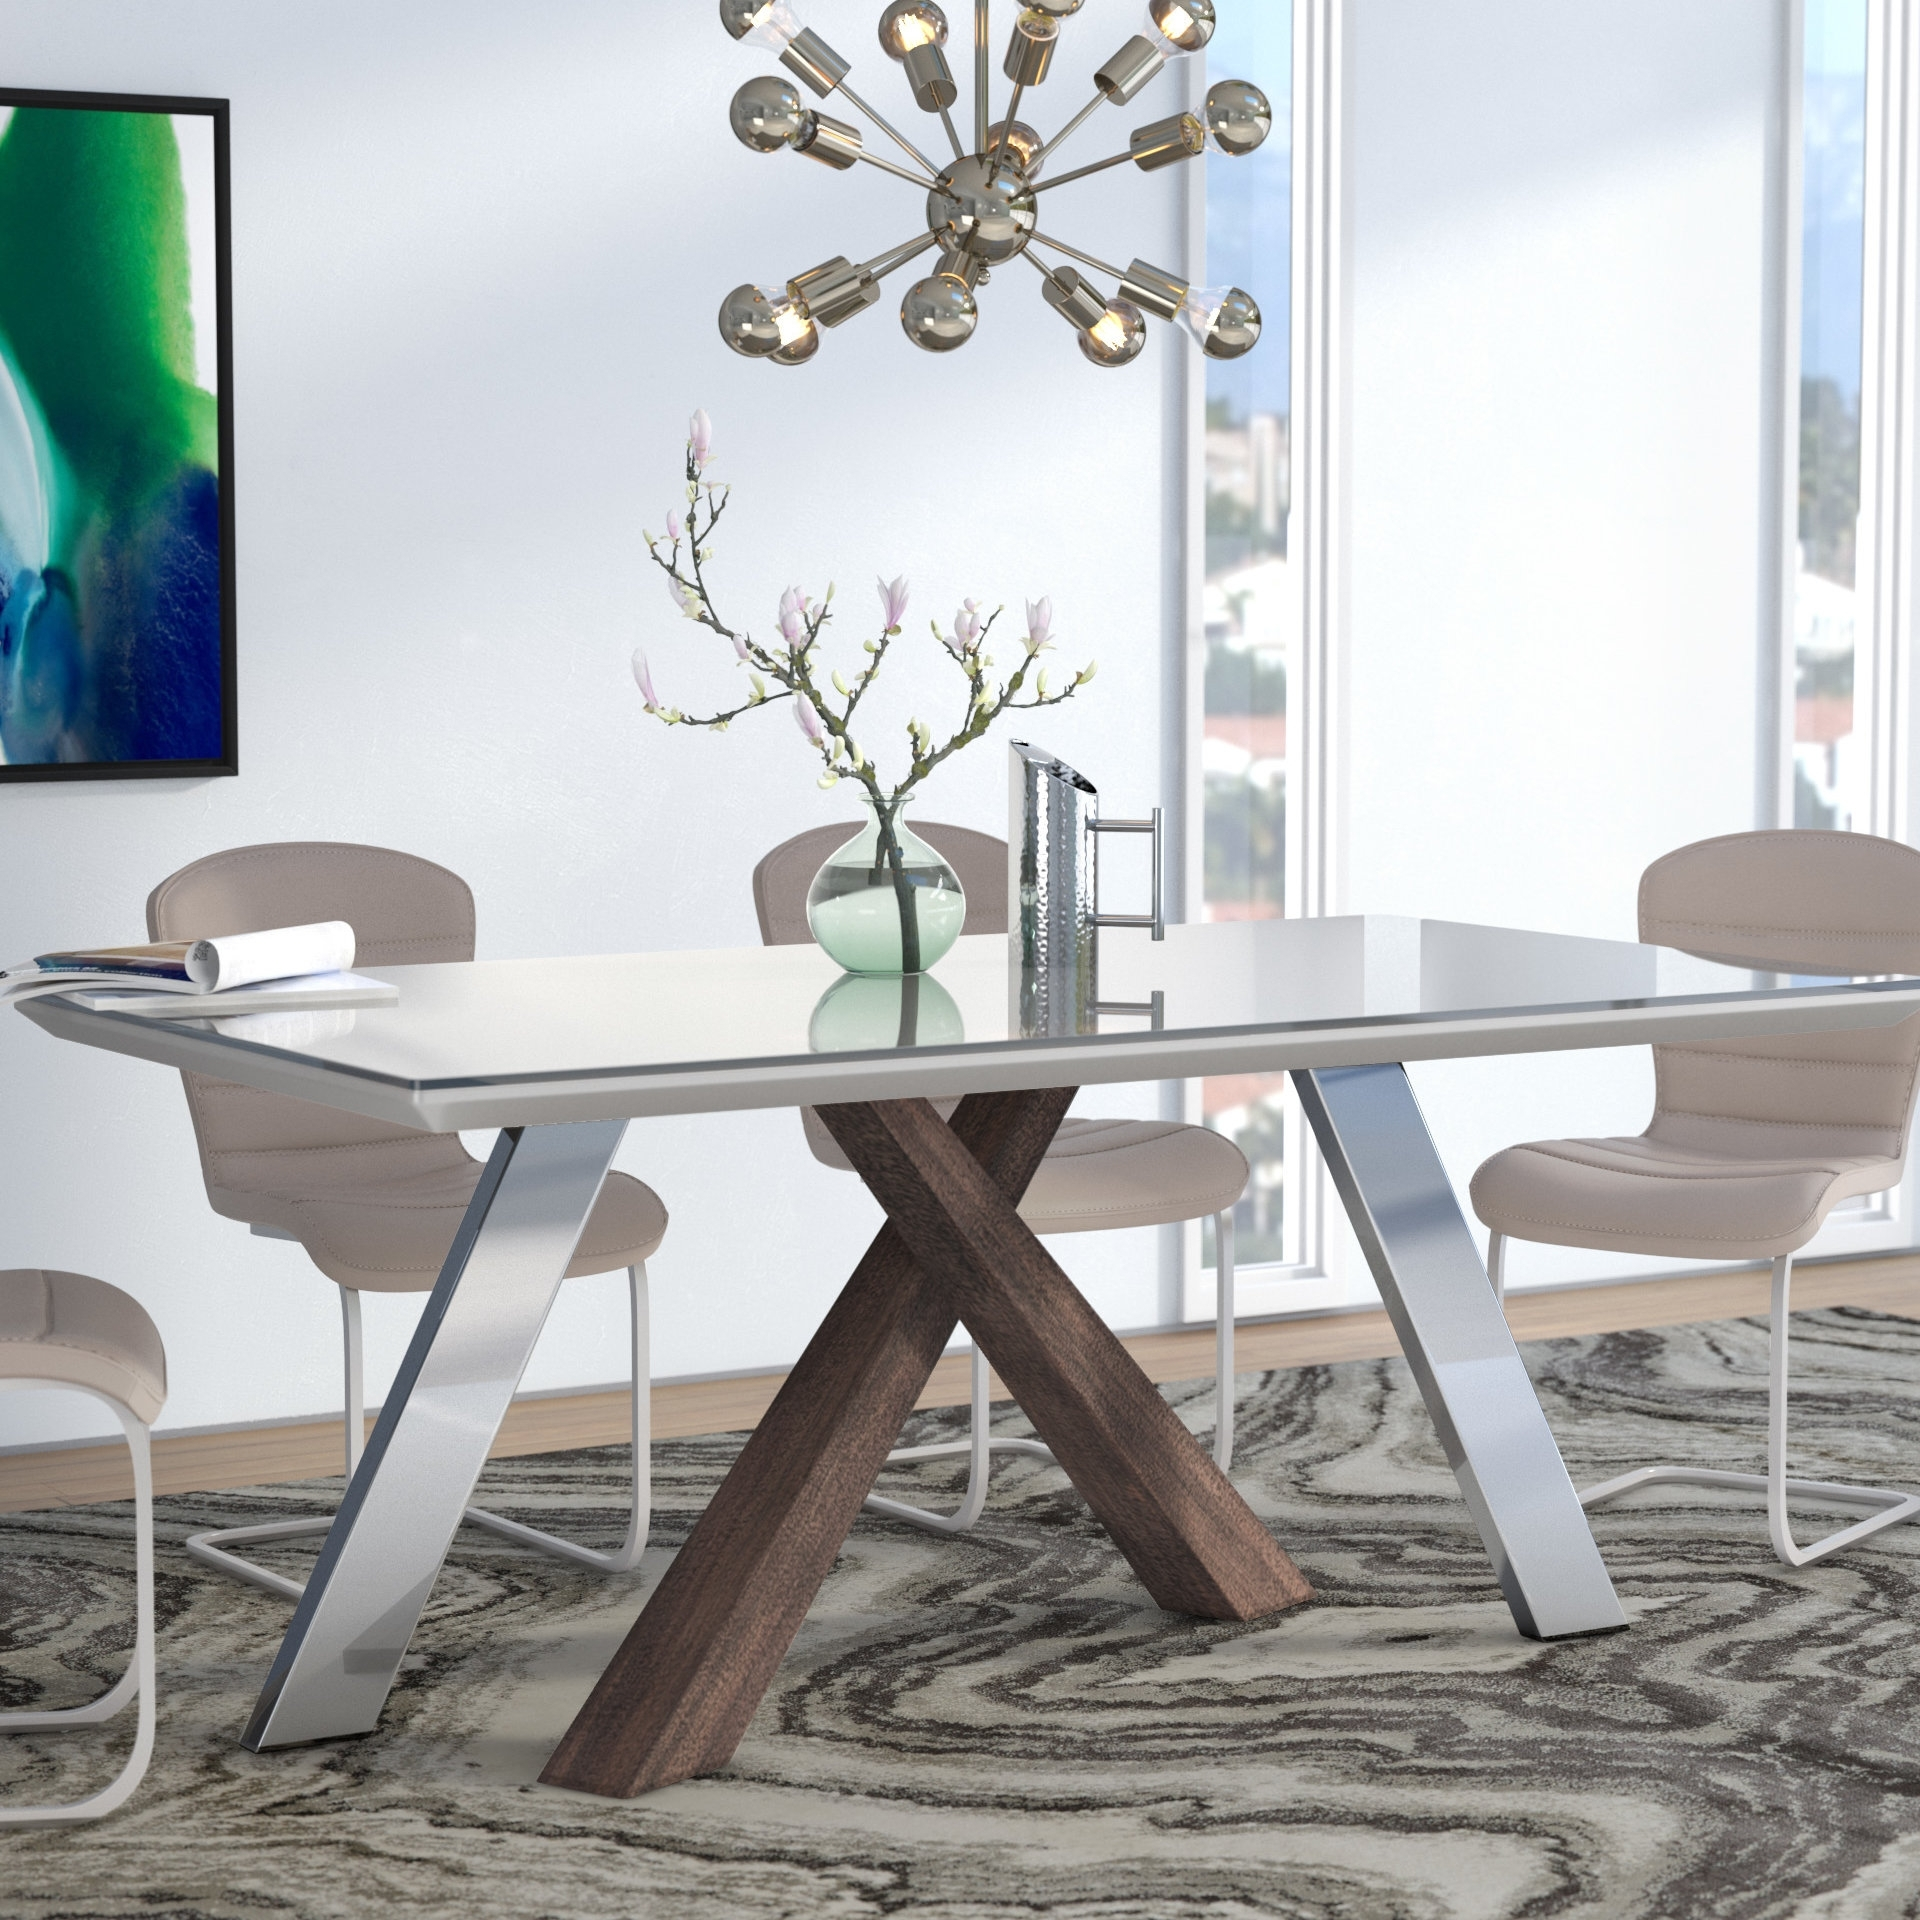 Wade Logan Link Dining Table & Reviews | Wayfair With Regard To Newest Grady Round Dining Tables (View 4 of 20)